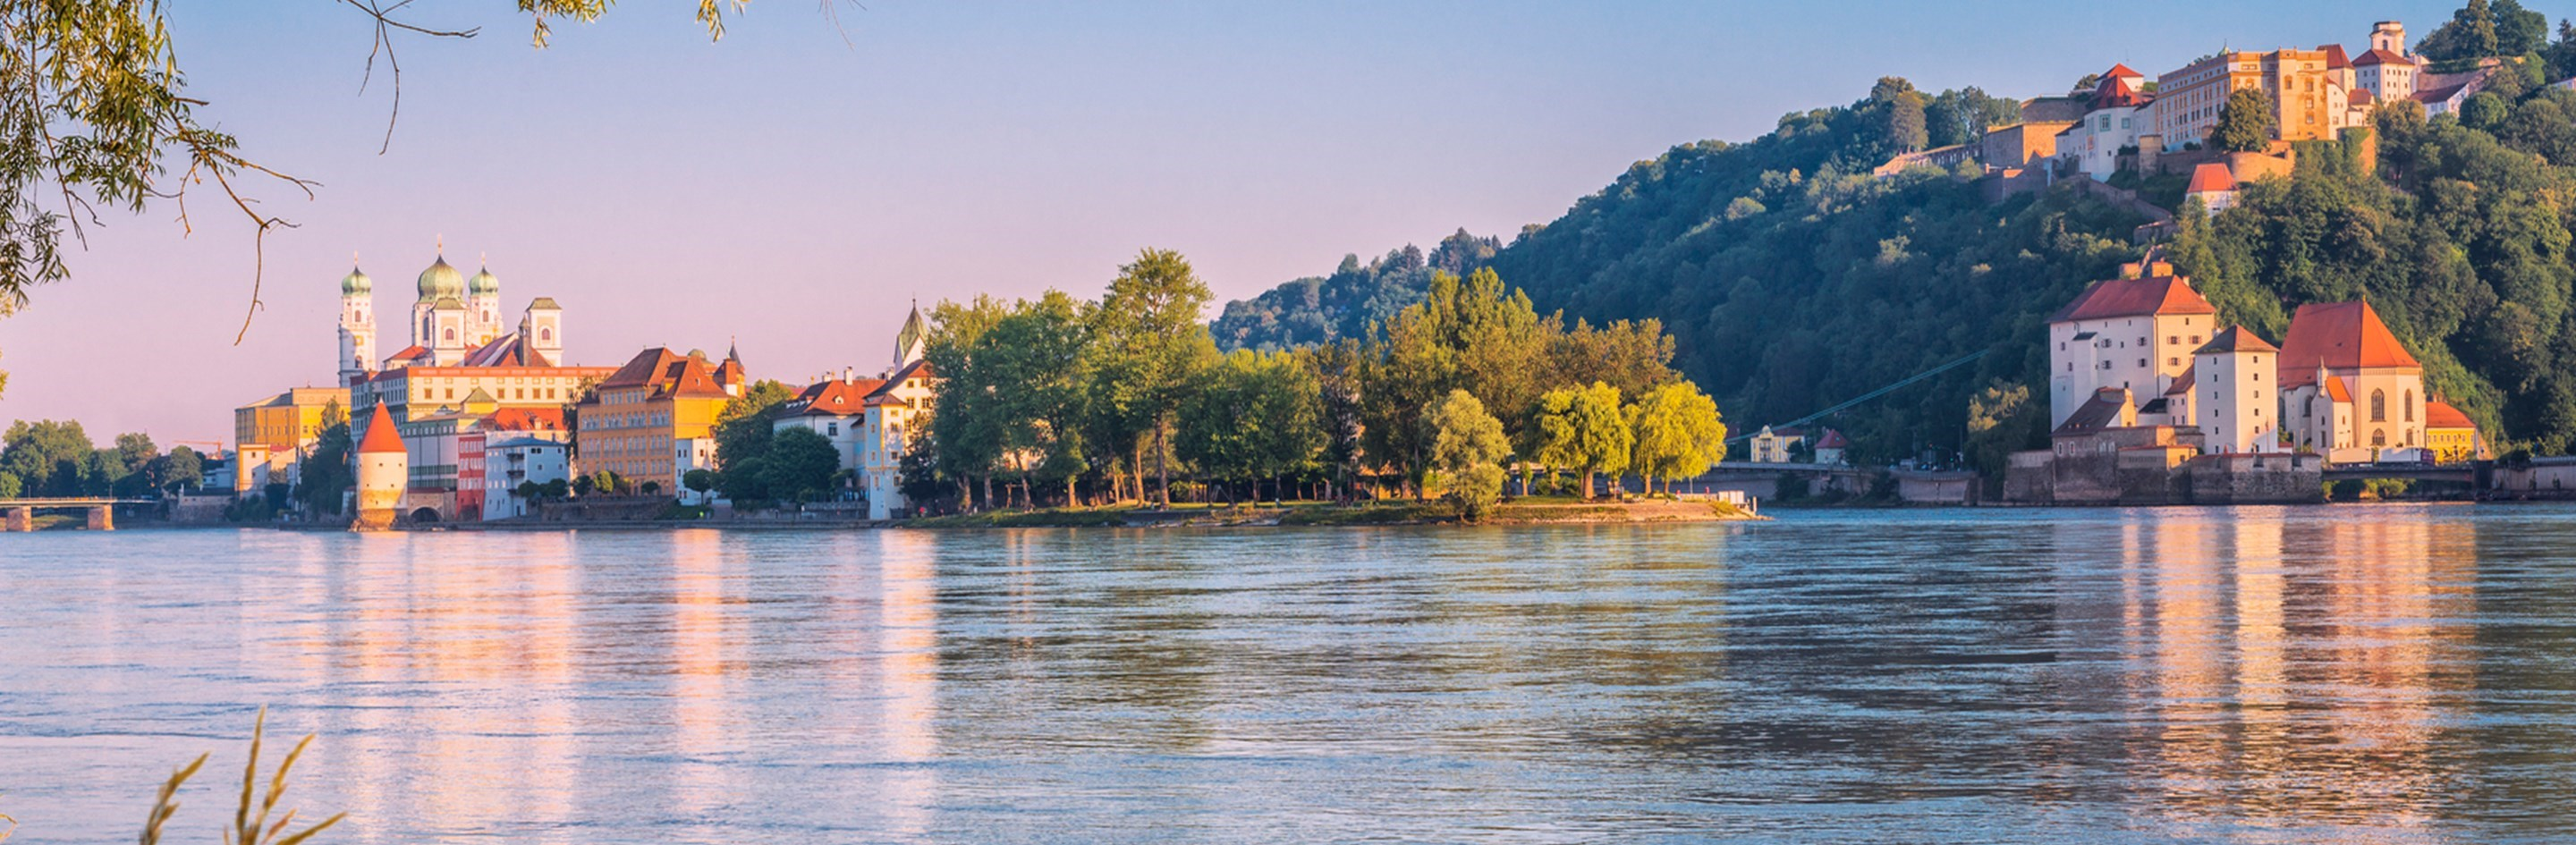 Melodies of The Danube River Cruise 2017 | AmaWaterways™